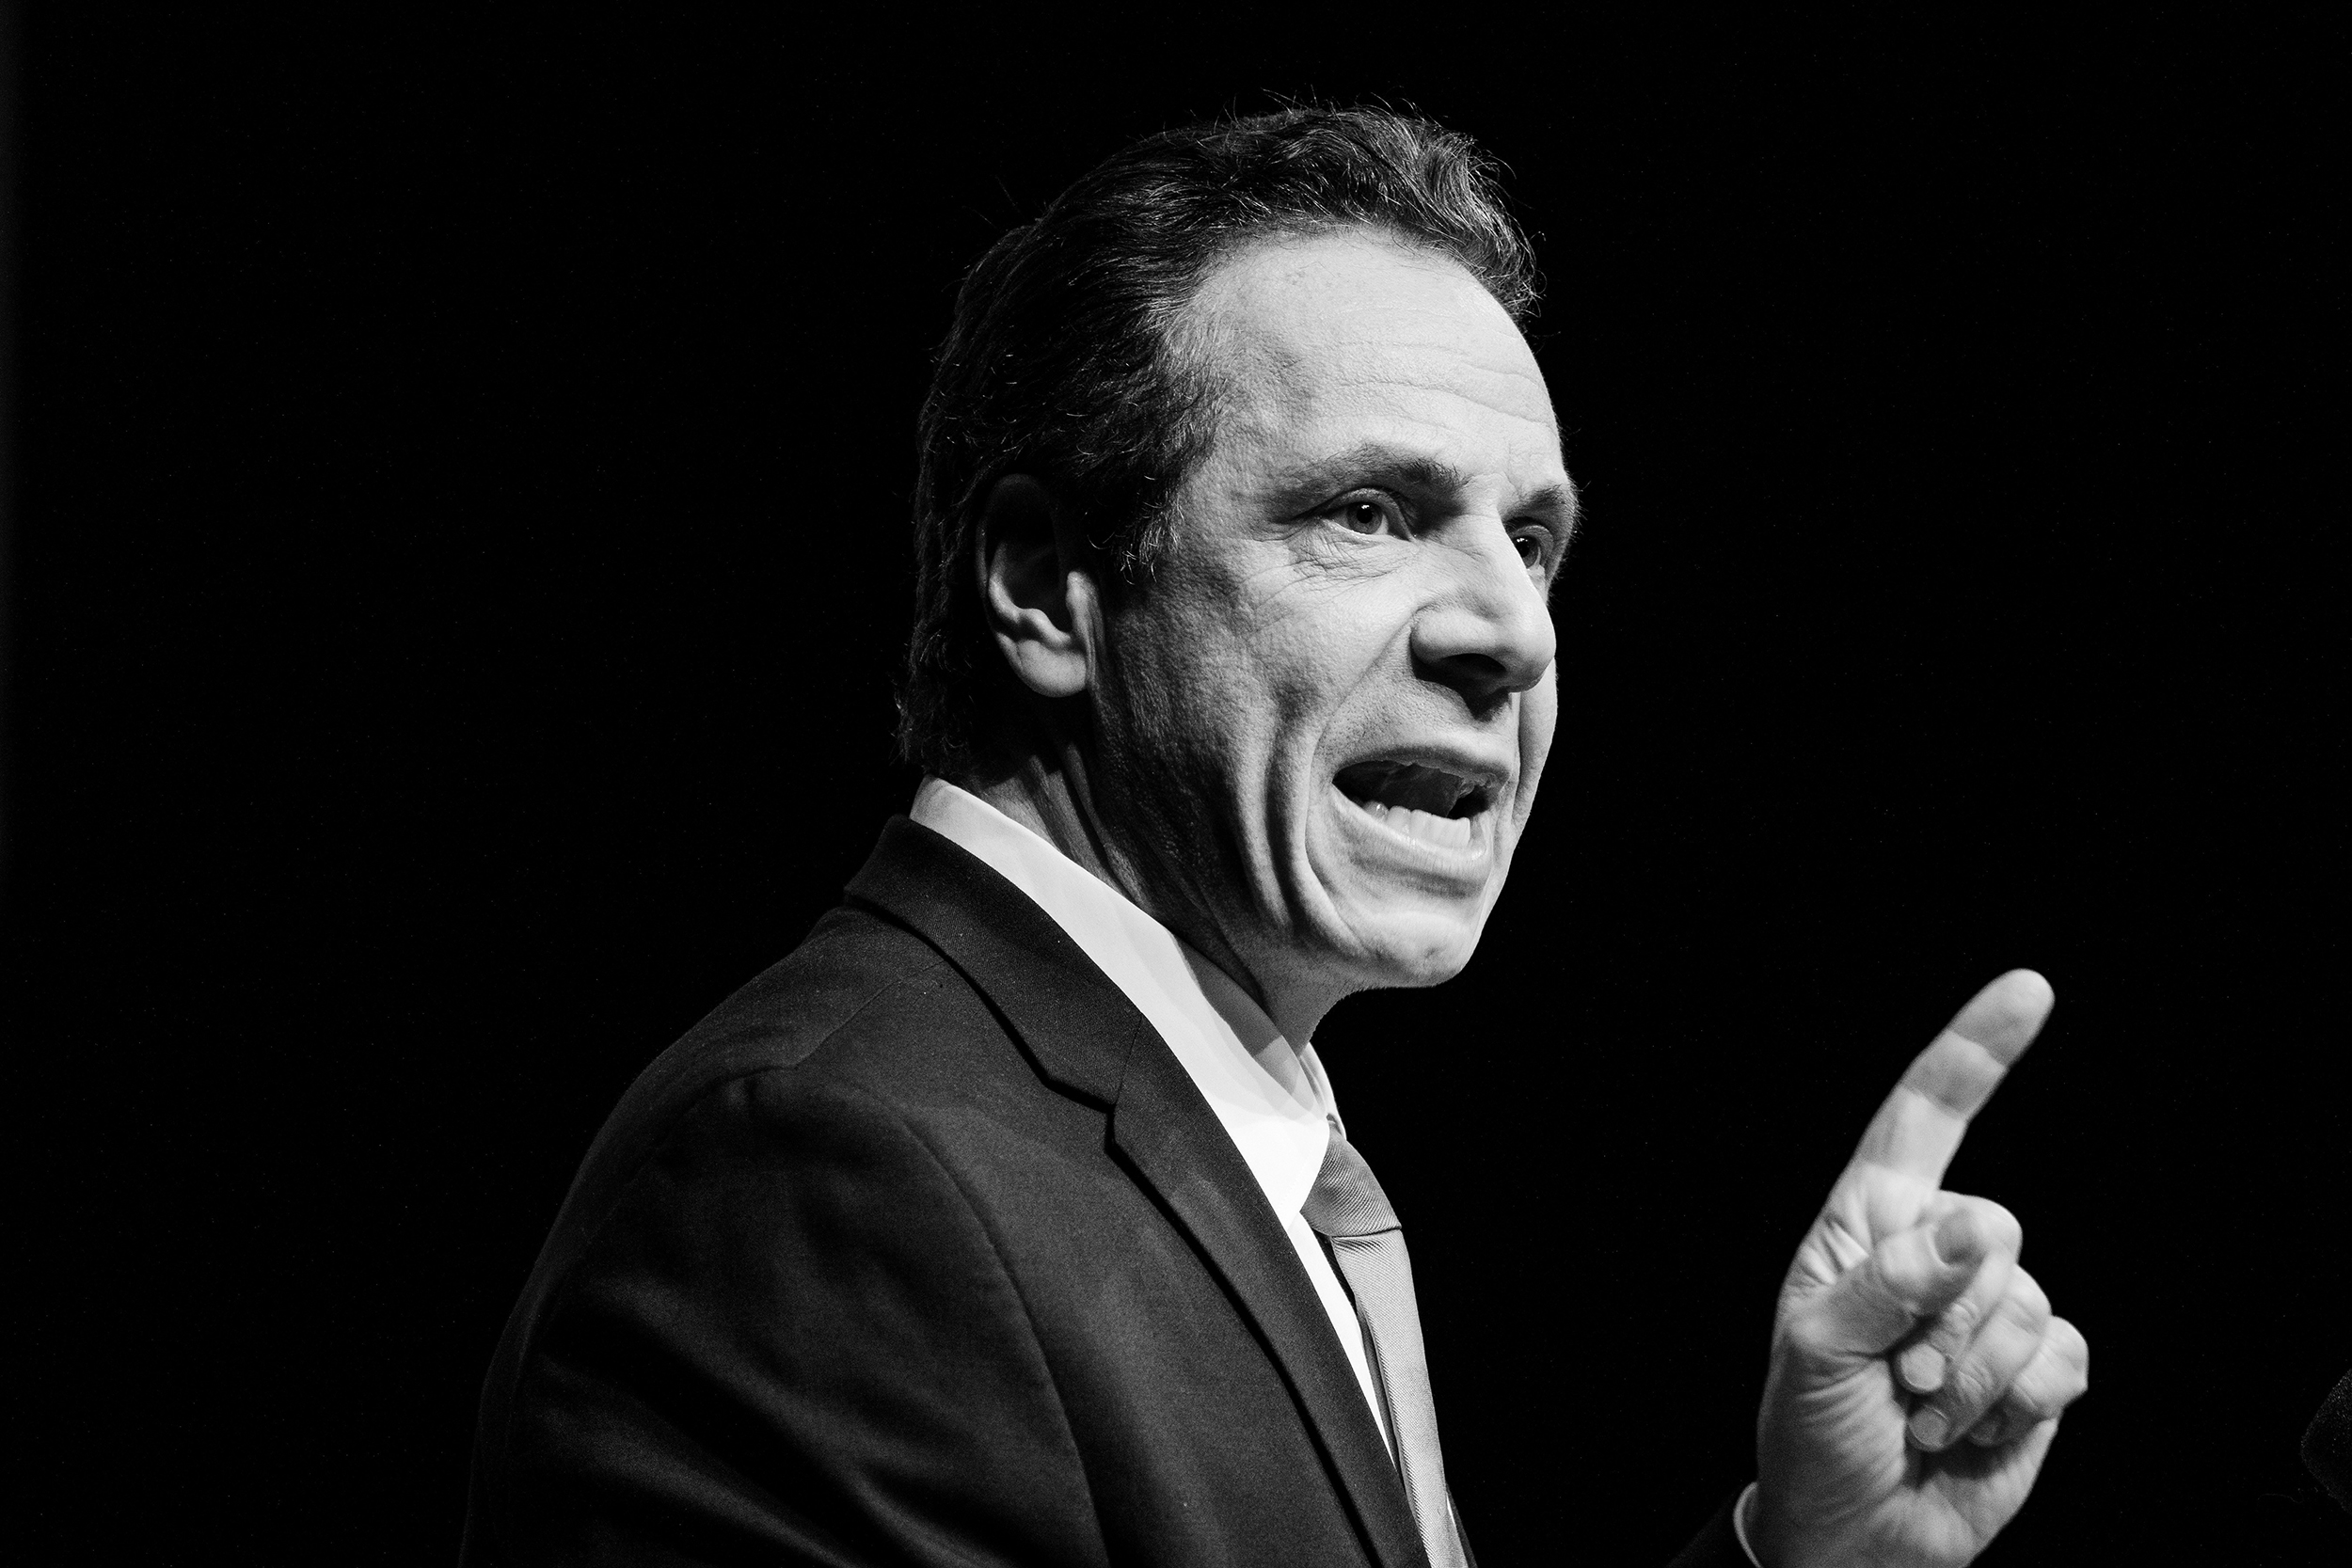 Cuomo denies claims of sexual harassment in state attorney general report, ignores calls to resign